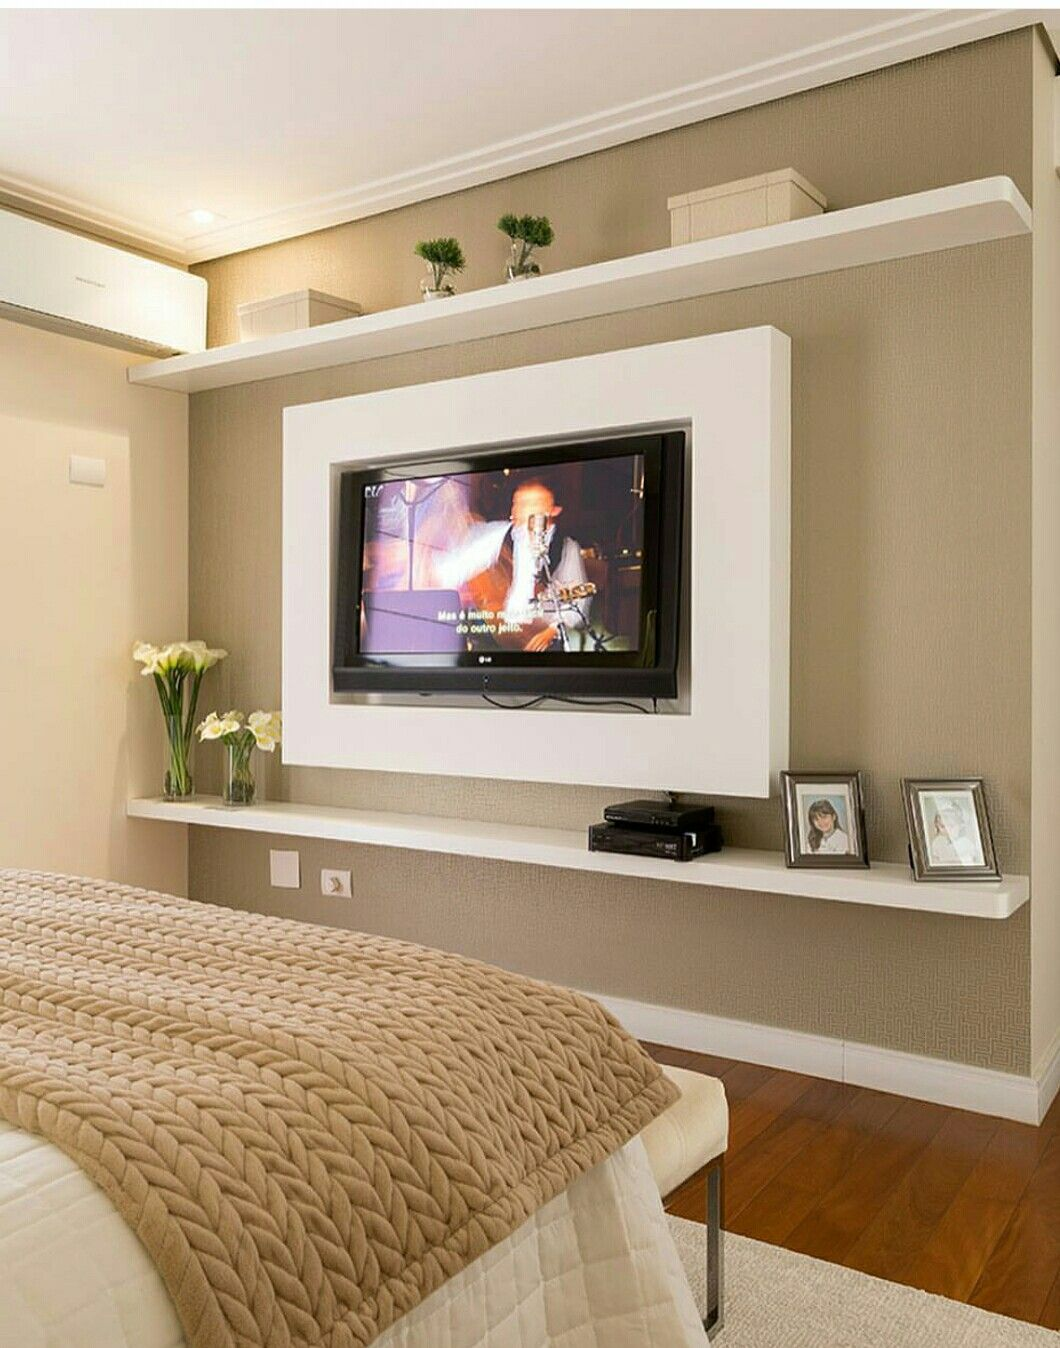 Pin de bongi sithole en d cor ideas pinterest - Tv en habitacion ...